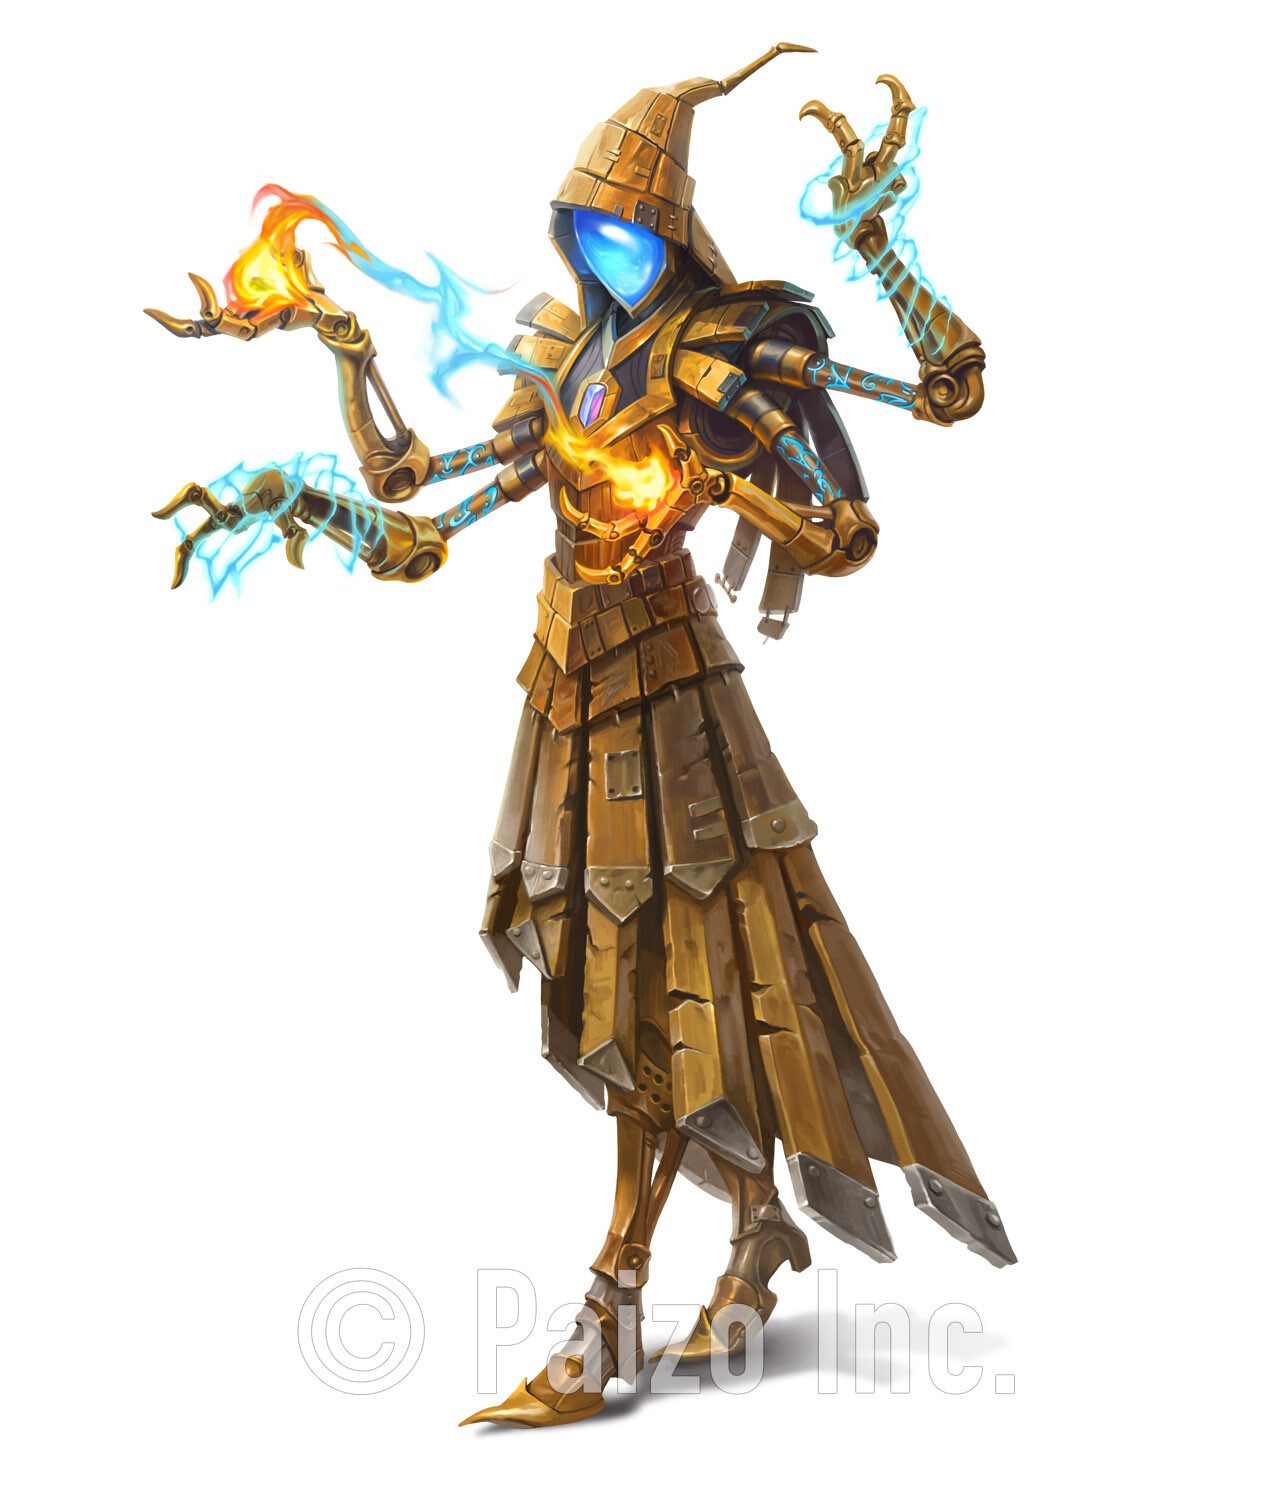 Clockwork Mage - Pathfinder 2e